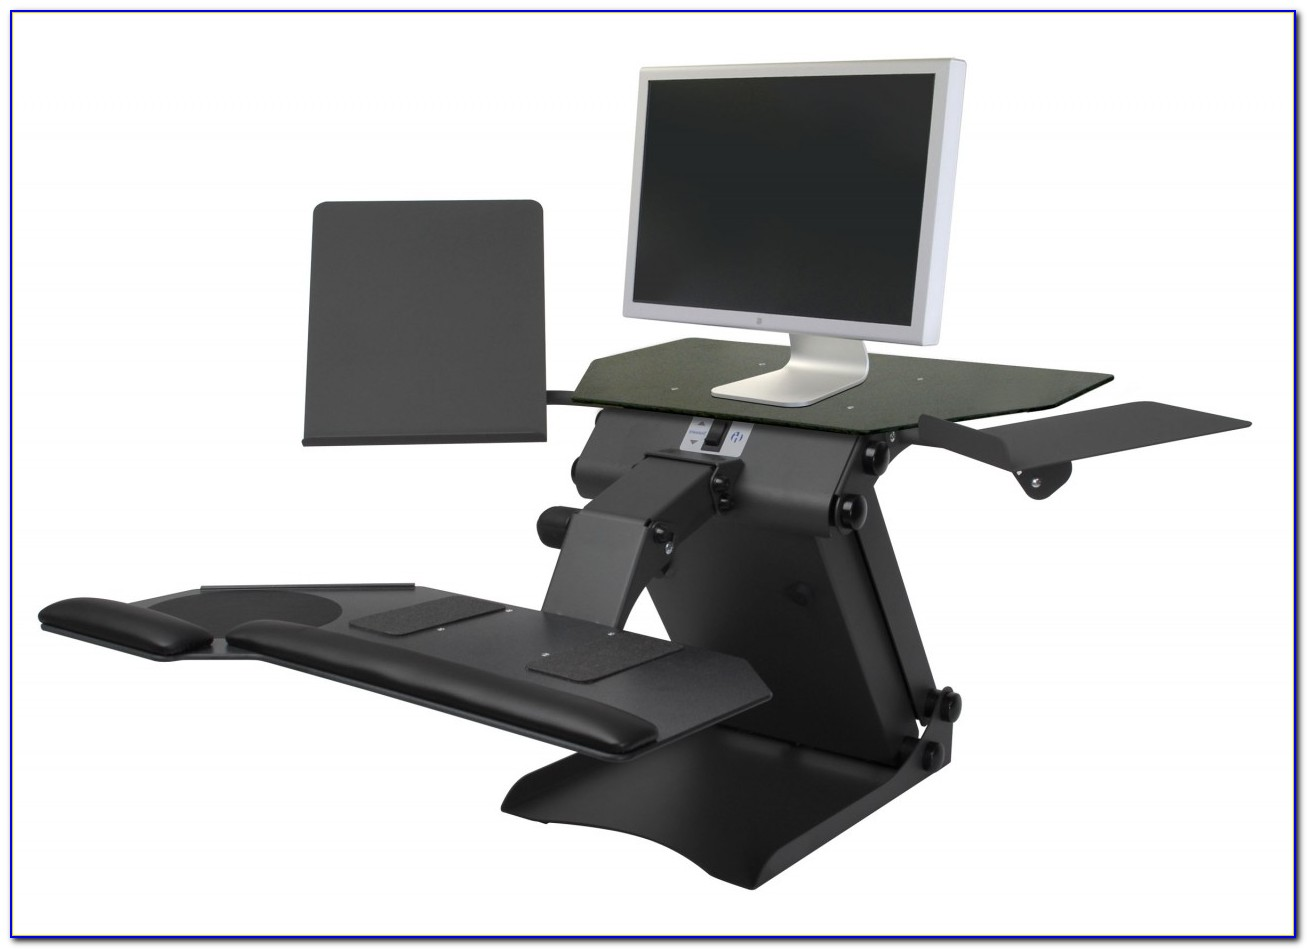 Midi Keyboard Stand For Desk